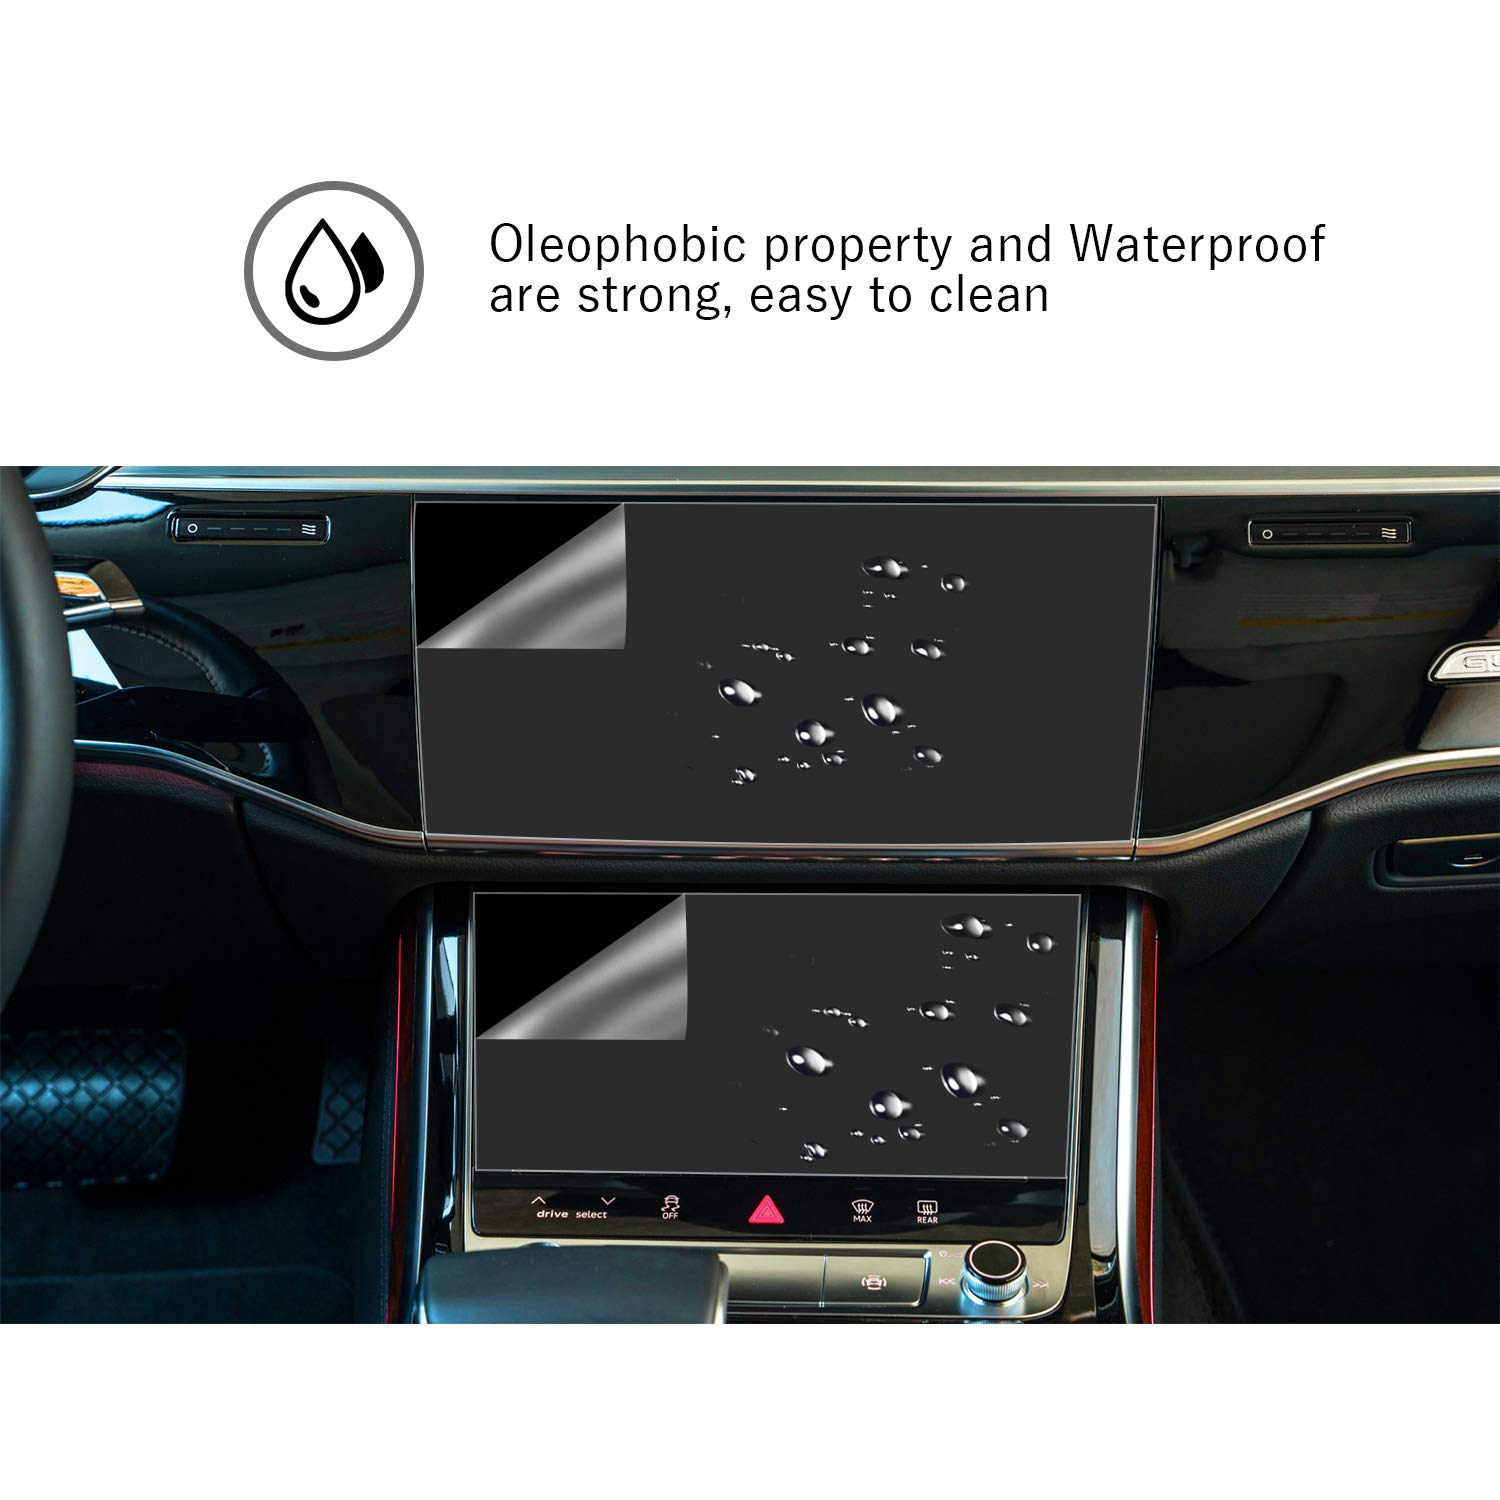 YEE PIN 2019 Audi A7 7Inch High Temperature Resistant Polyester Thin Film 4Packs High Wear Resistance High Definition Touch Sensitive Light Thin /& Easy to Install Protective Film 6.70925E+11